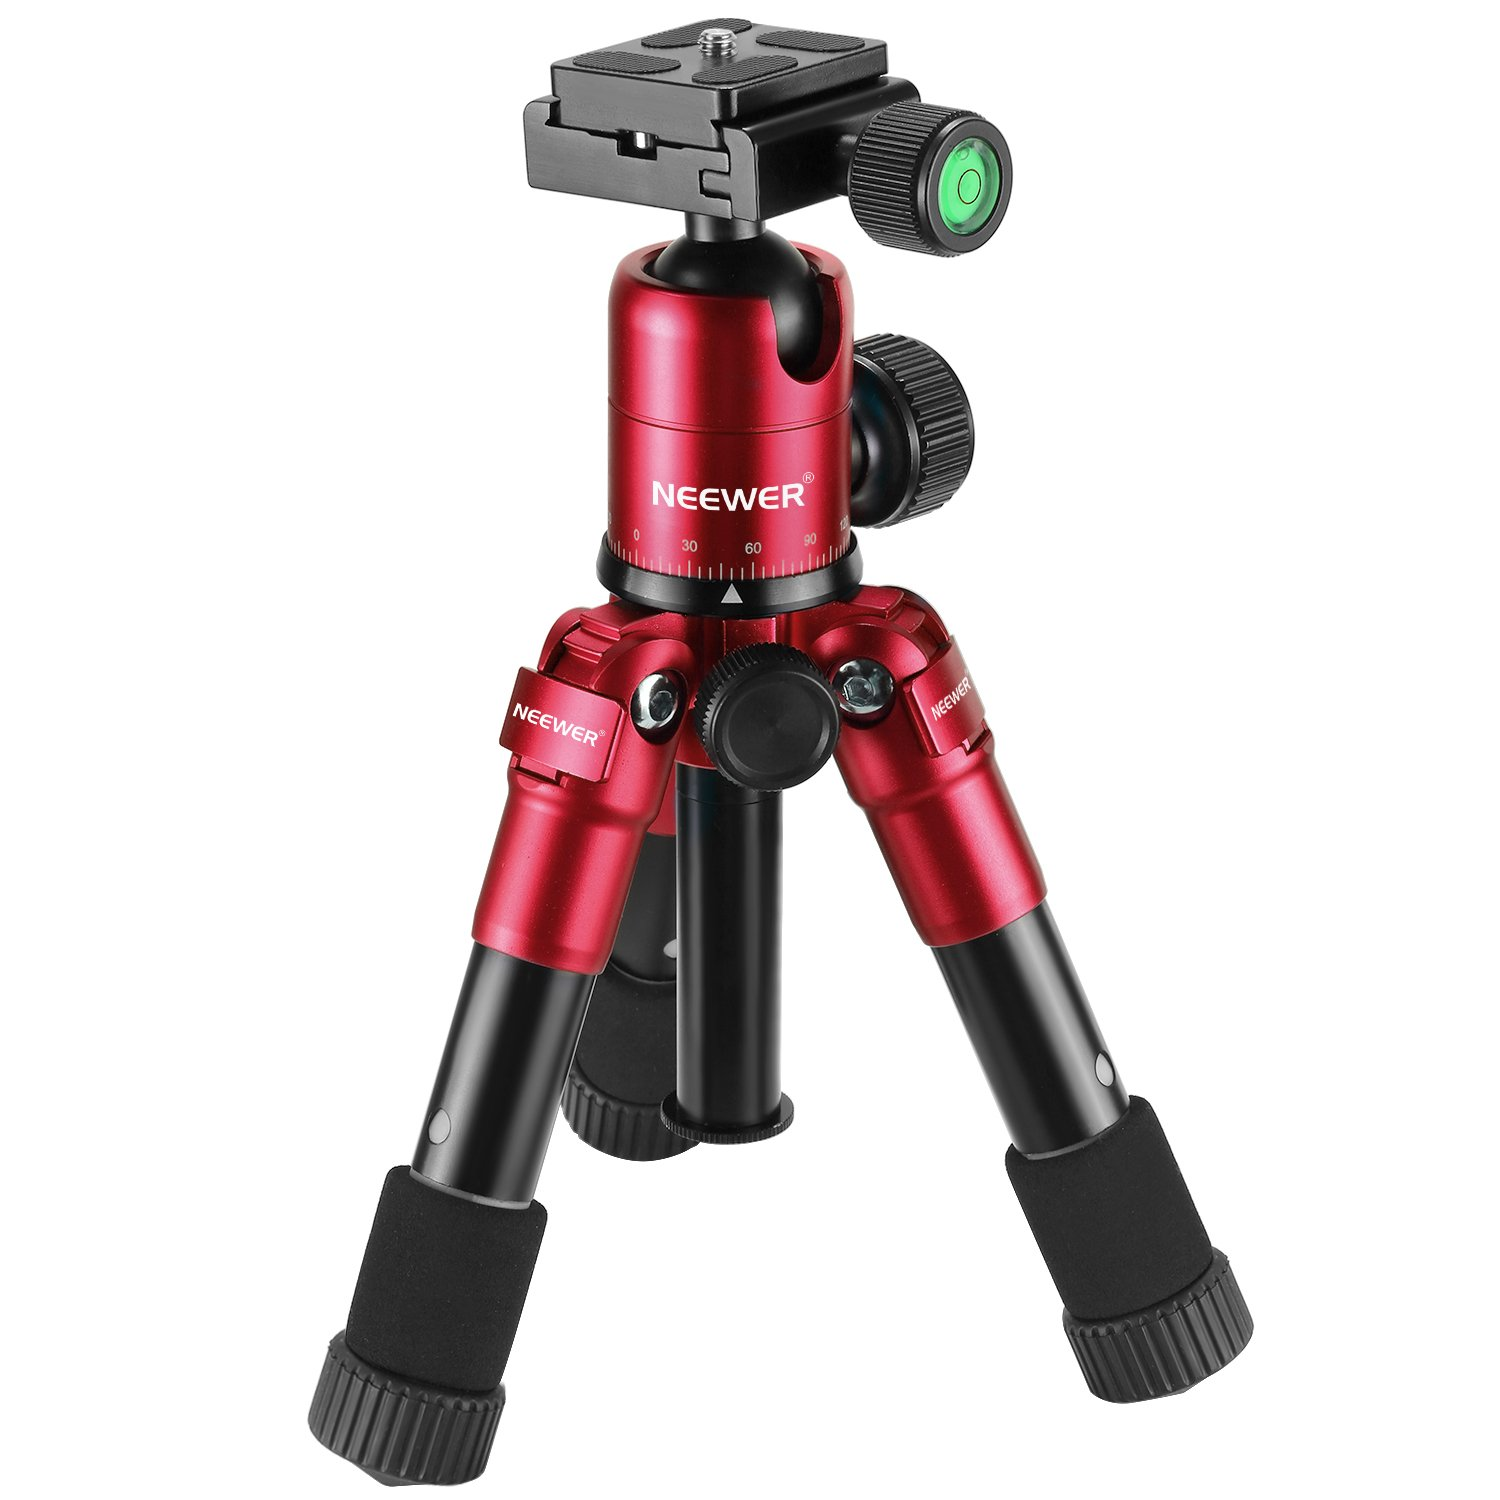 Neewer 20 inches/50 centimeters Portable Compact Desktop Macro Mini Tripod with 360 Degree Ball Head,1/4 inches Quick Shoe Plate,Bag for DSLR Camera,Video Camcorder,up to 11 pounds/5 kilograms Red by Neewer